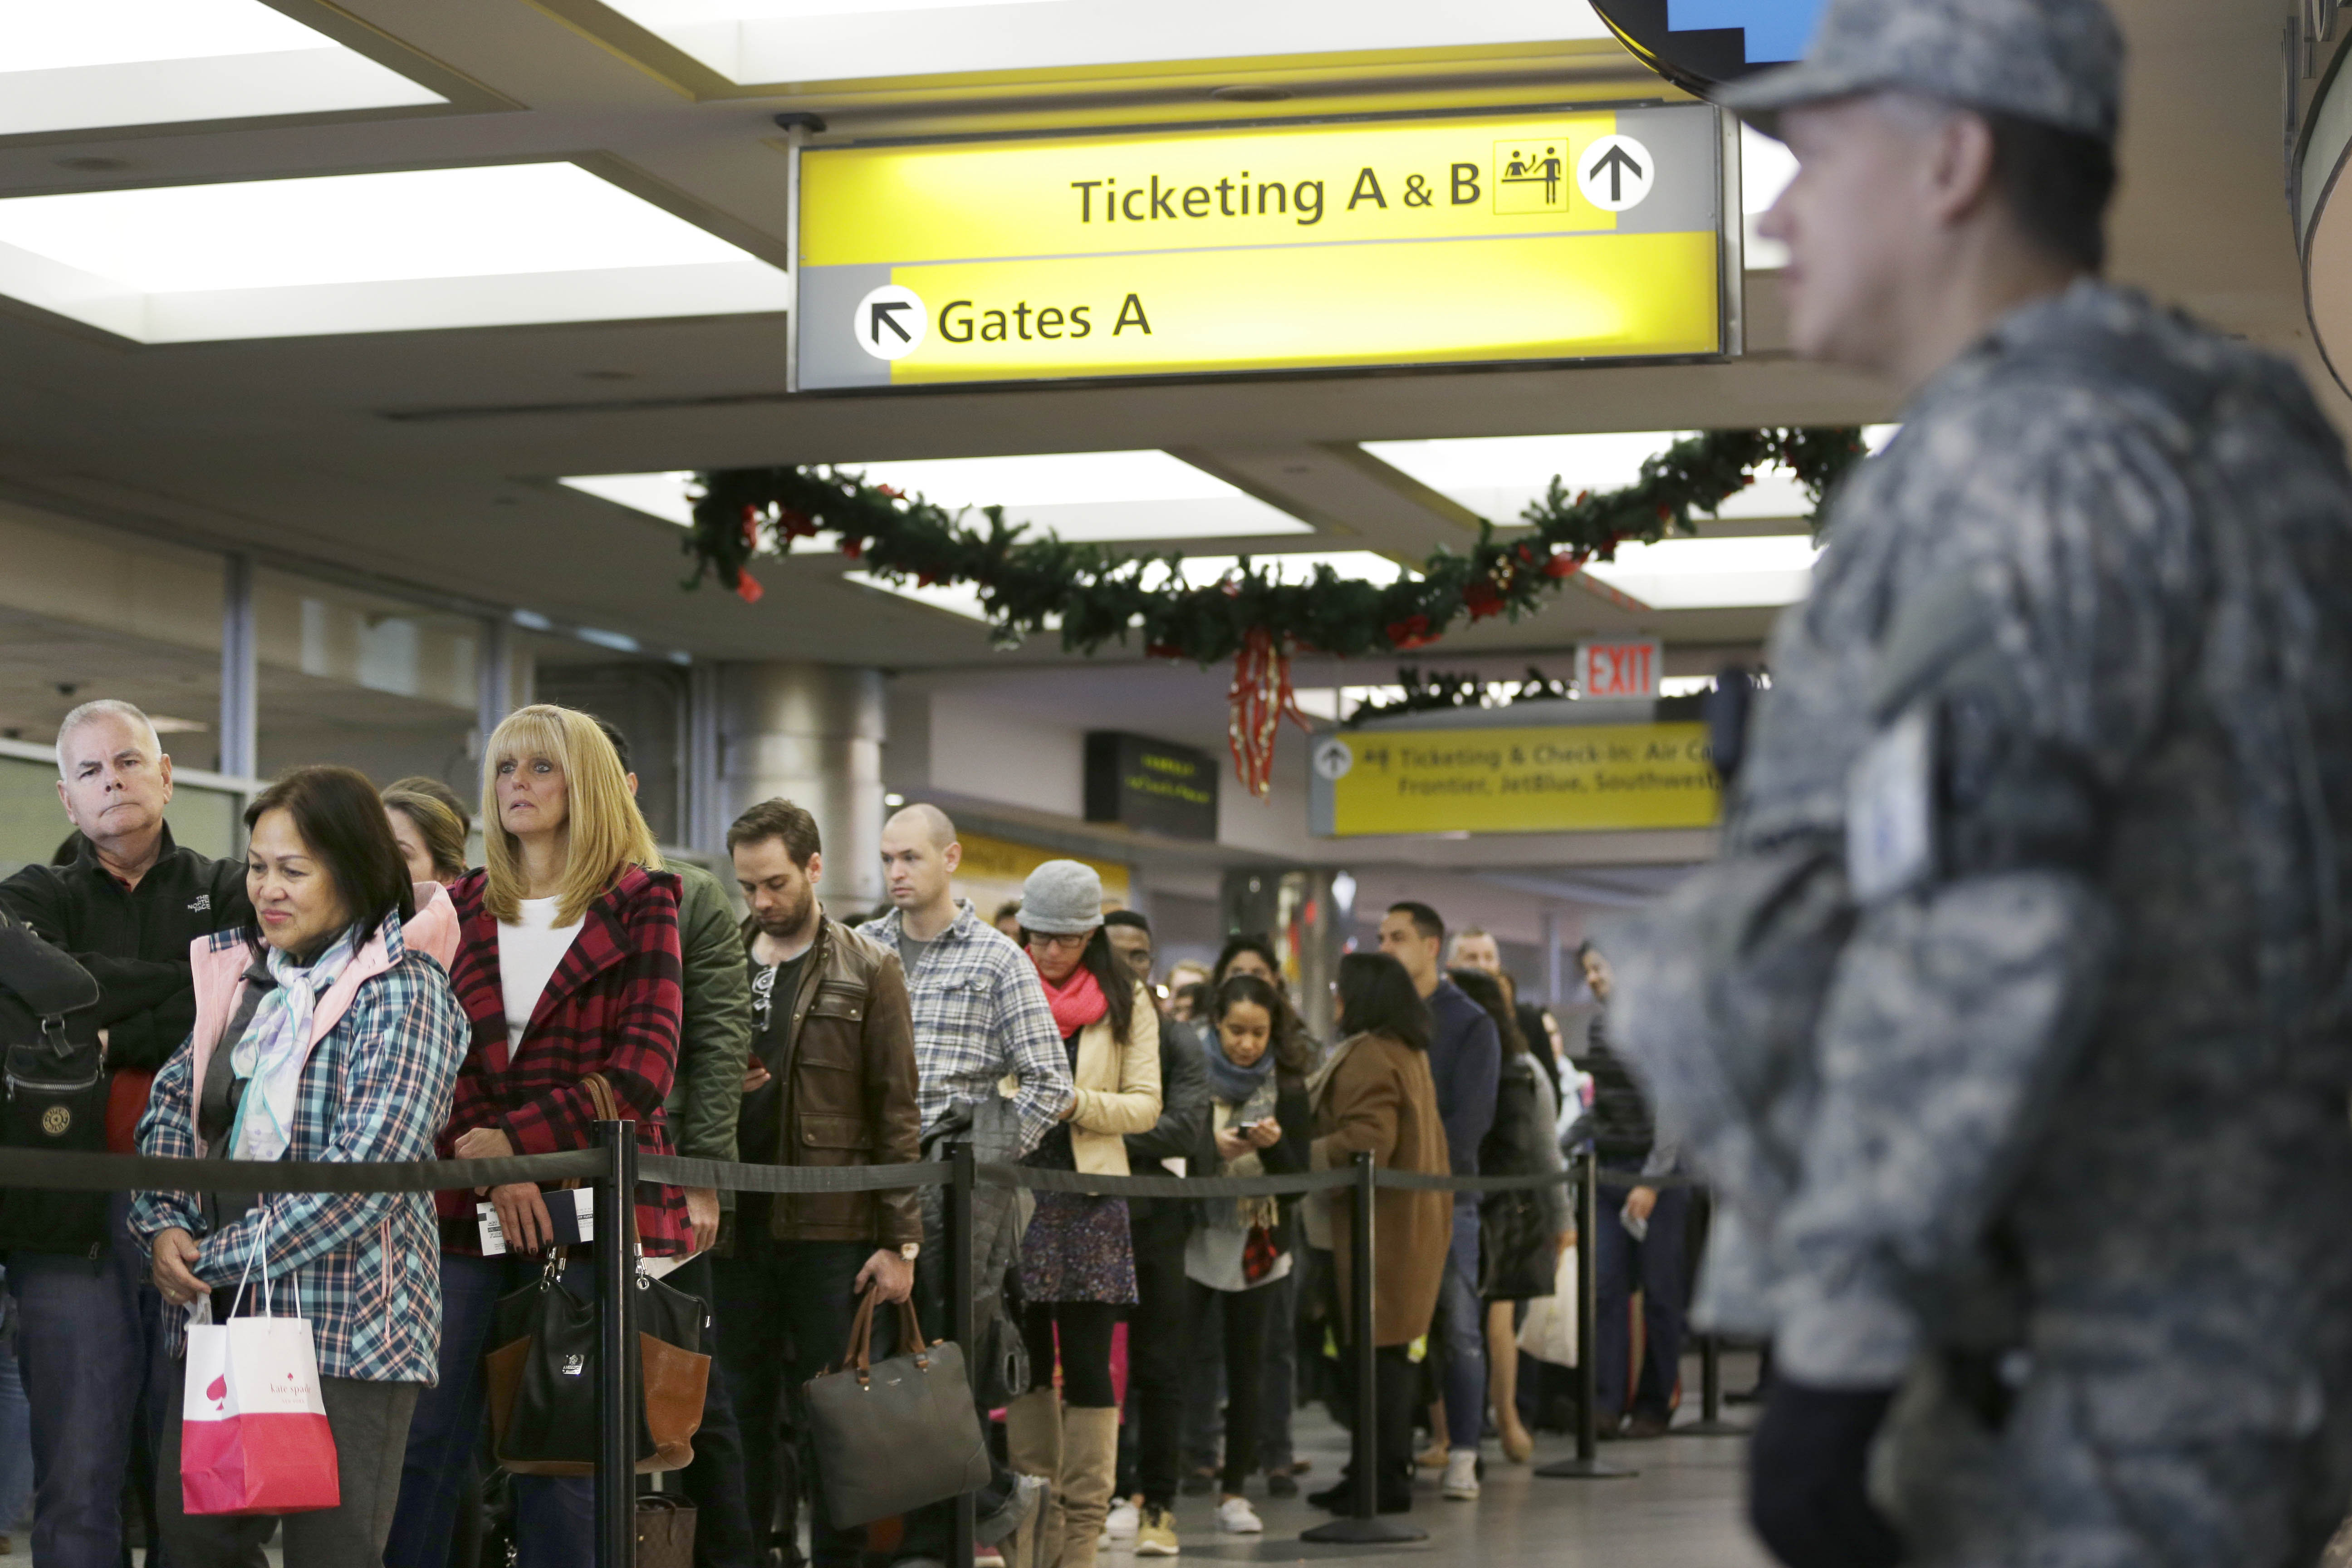 A tip to get through tight airport security faster